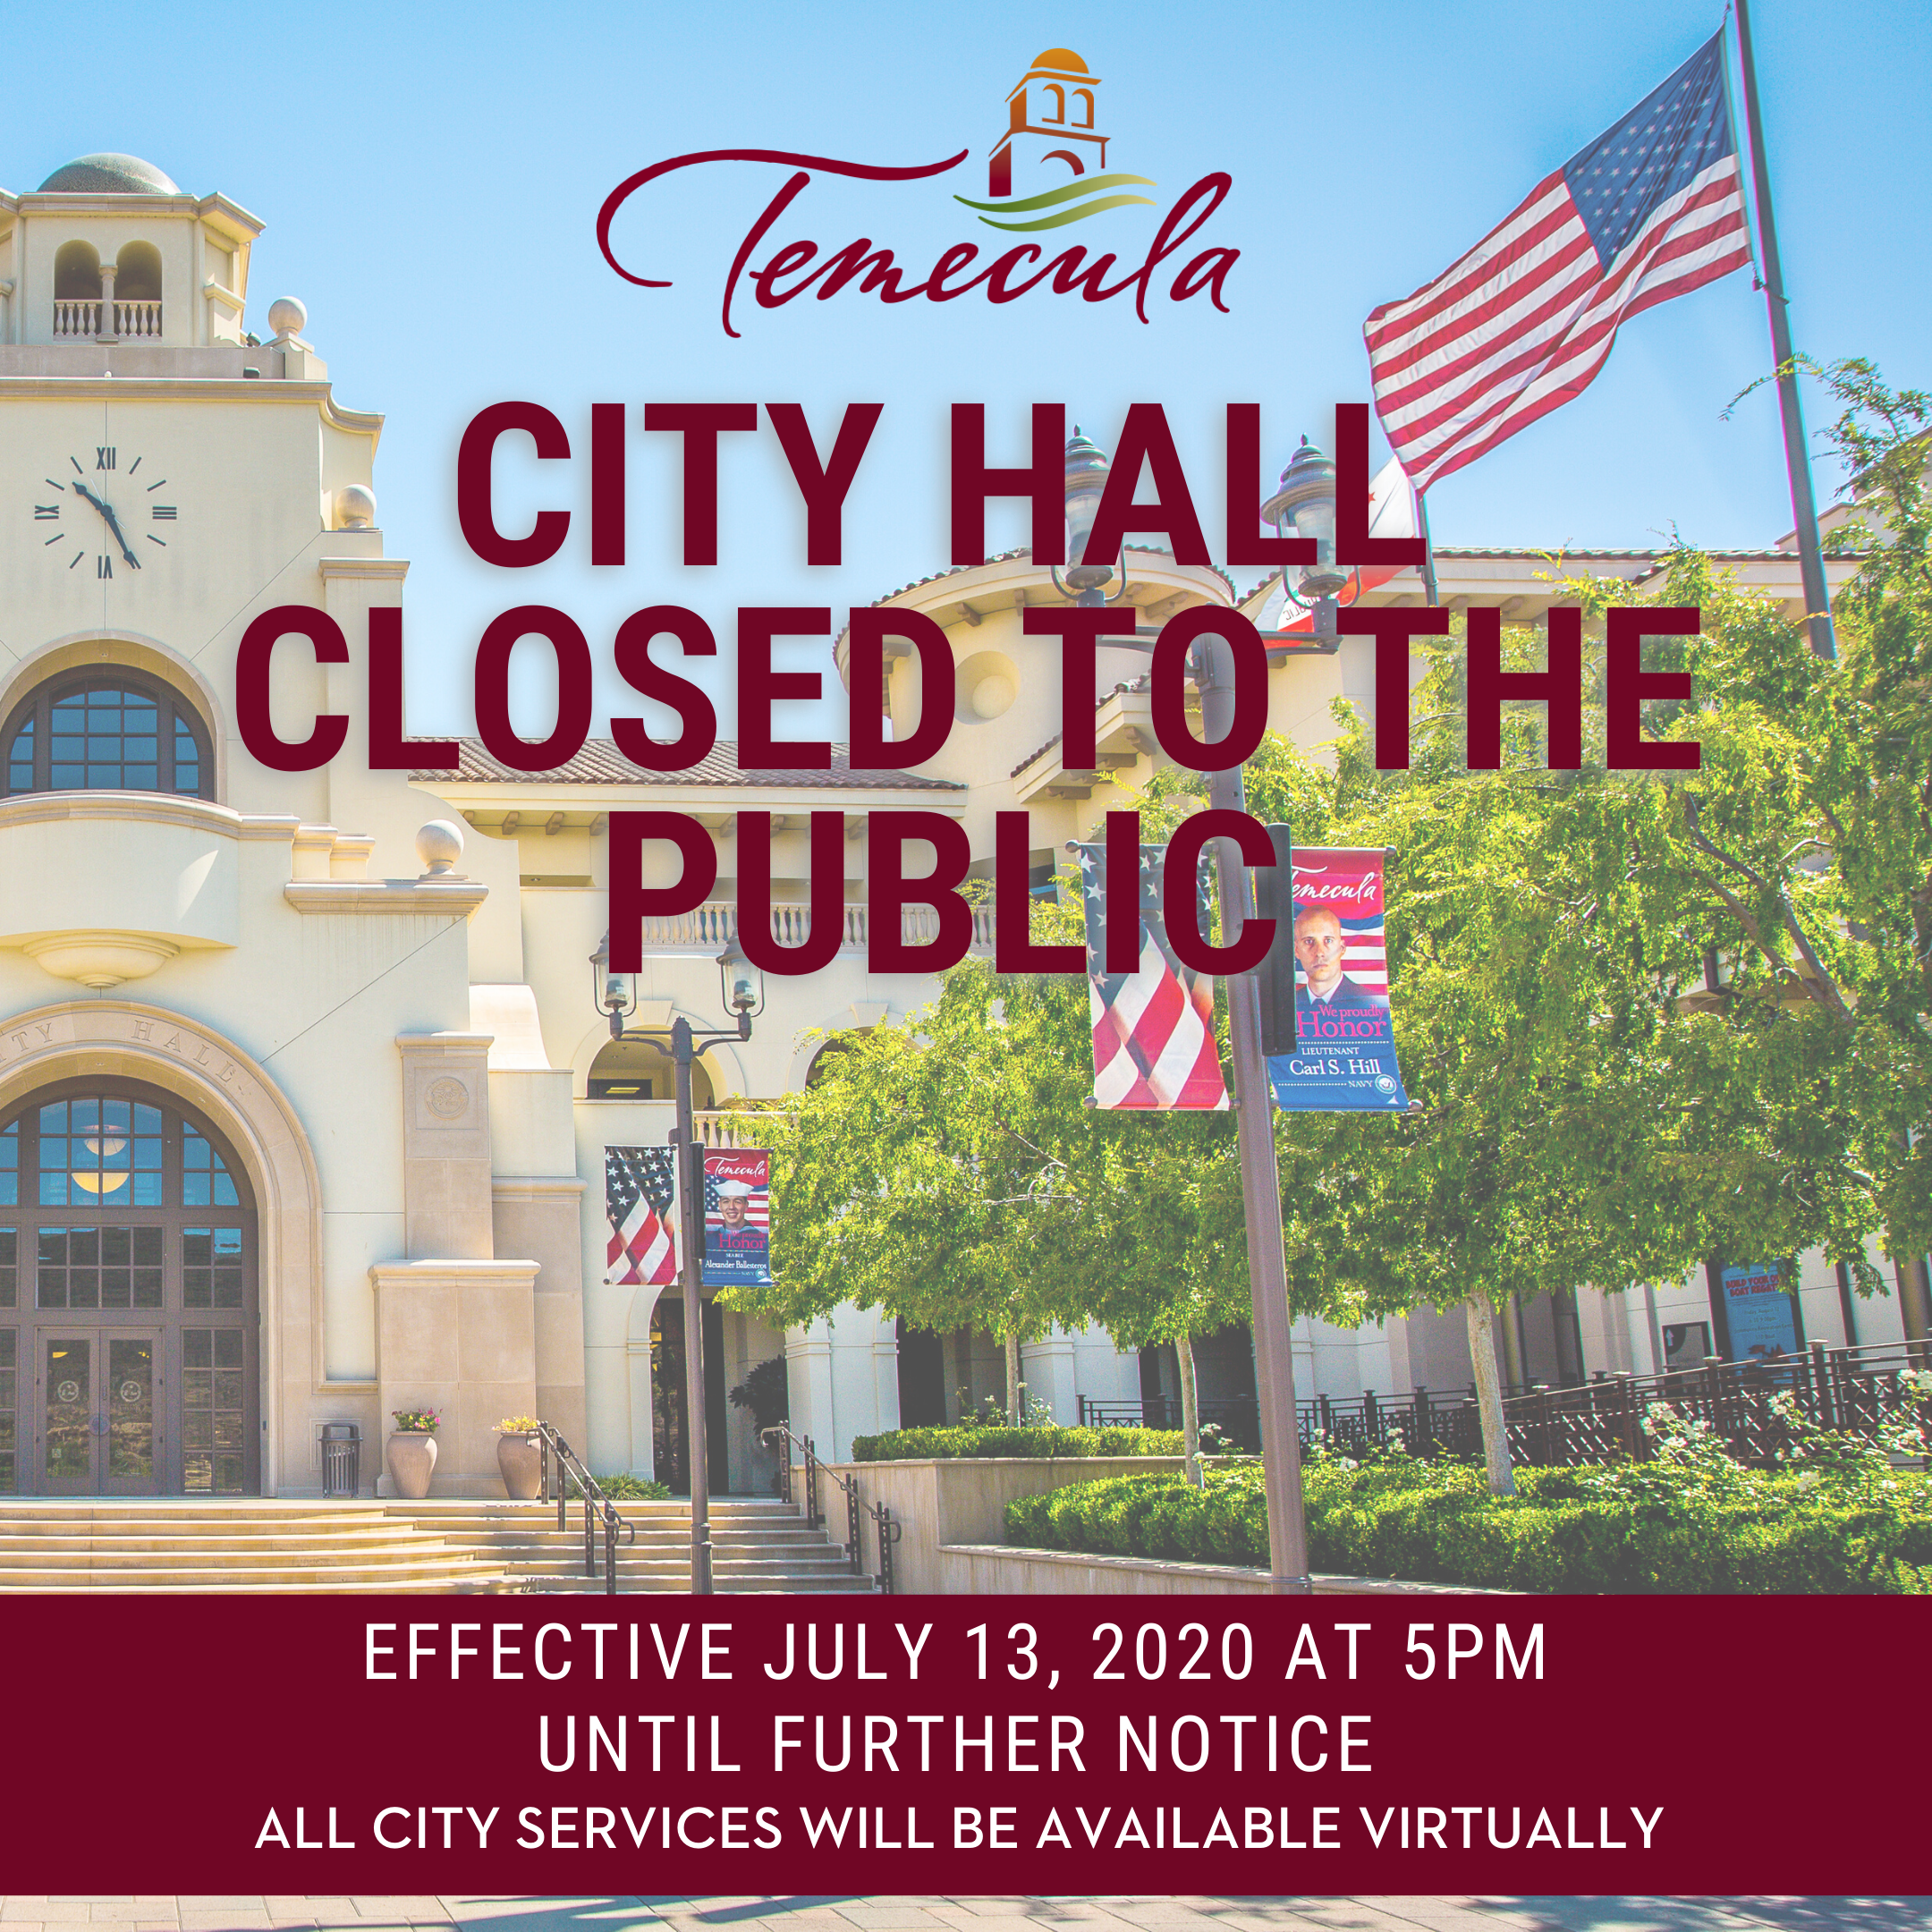 Temecula City hall Closed to the Public1